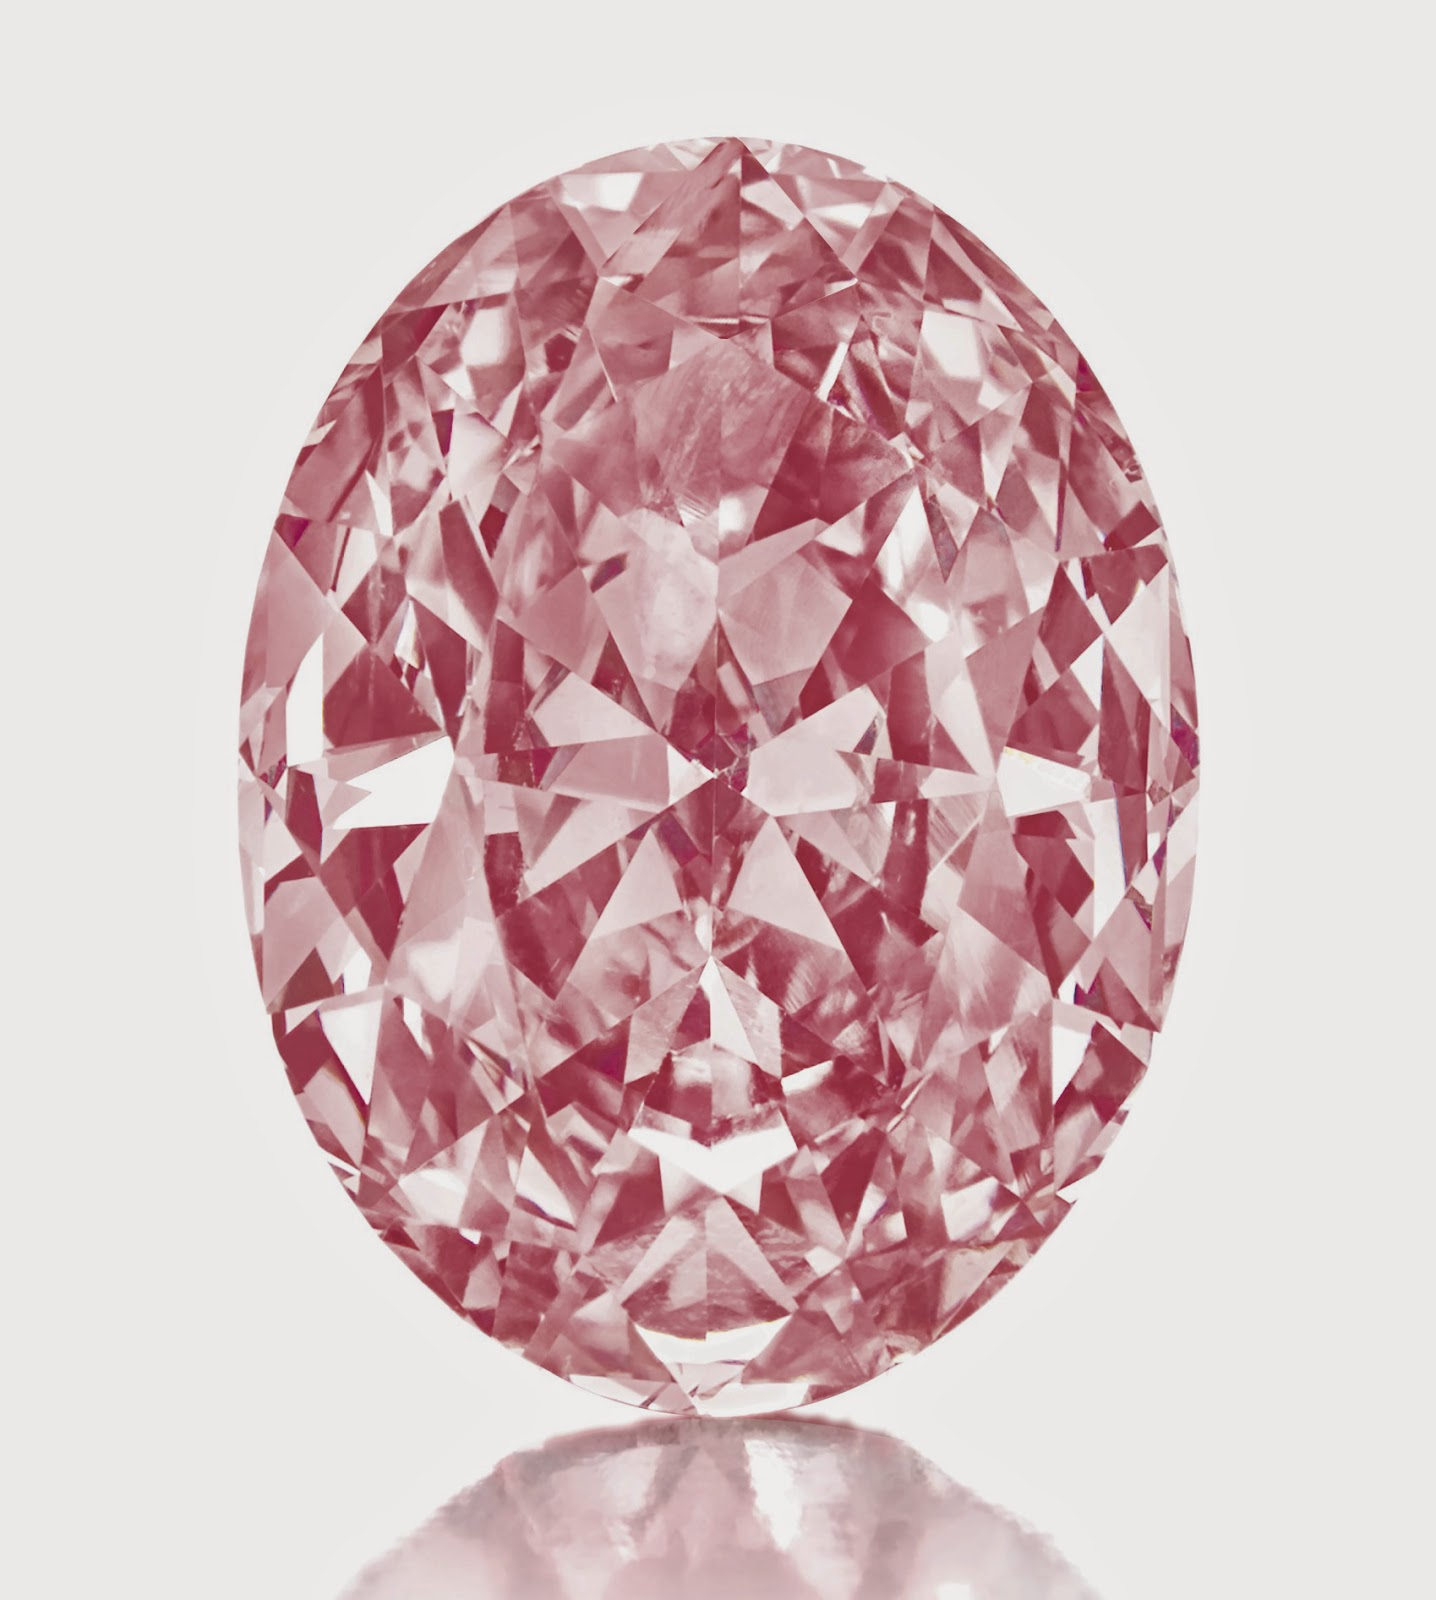 jewelry: 5.5-Carat Pink Diamond Leads Christie\'s Auction Selling For ...